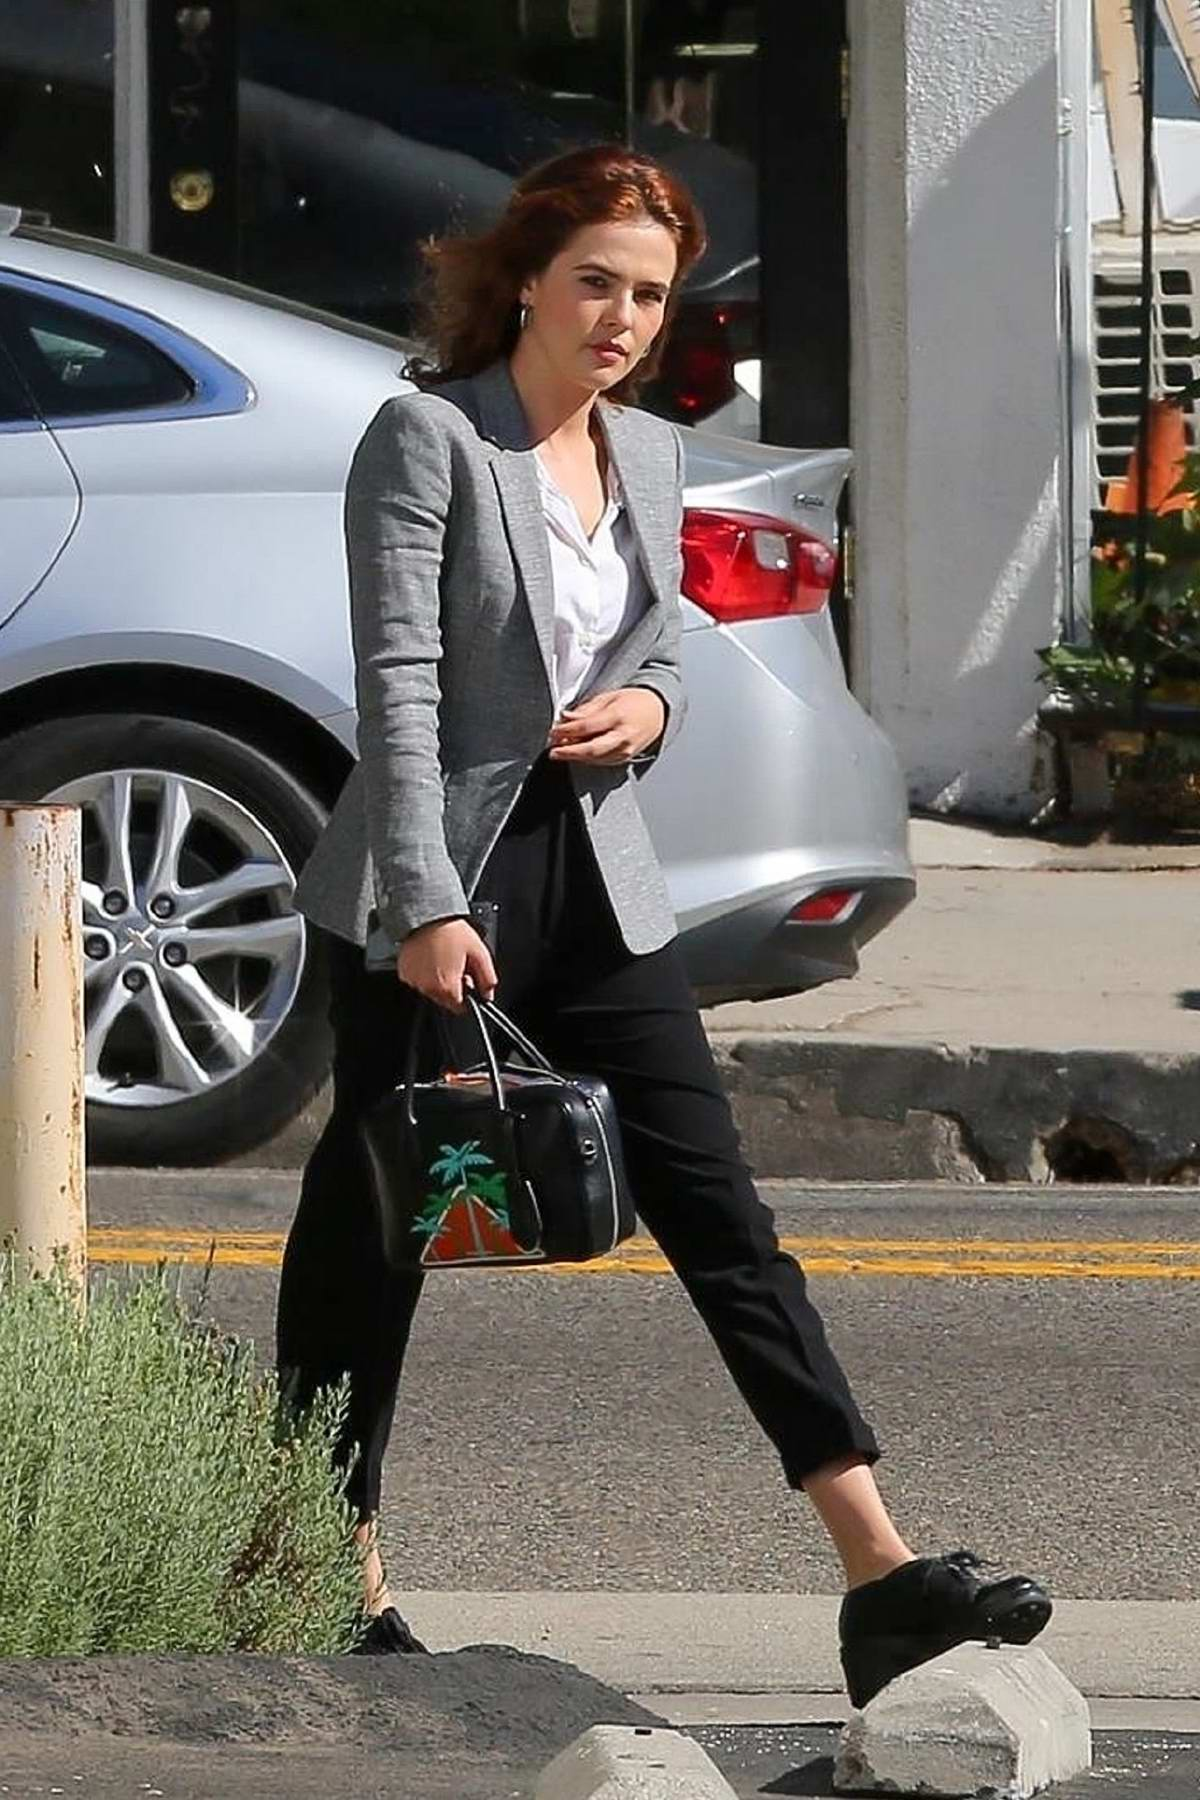 Zoey Deutch Wears A Grey Blazer And Cropped Black Pants As She